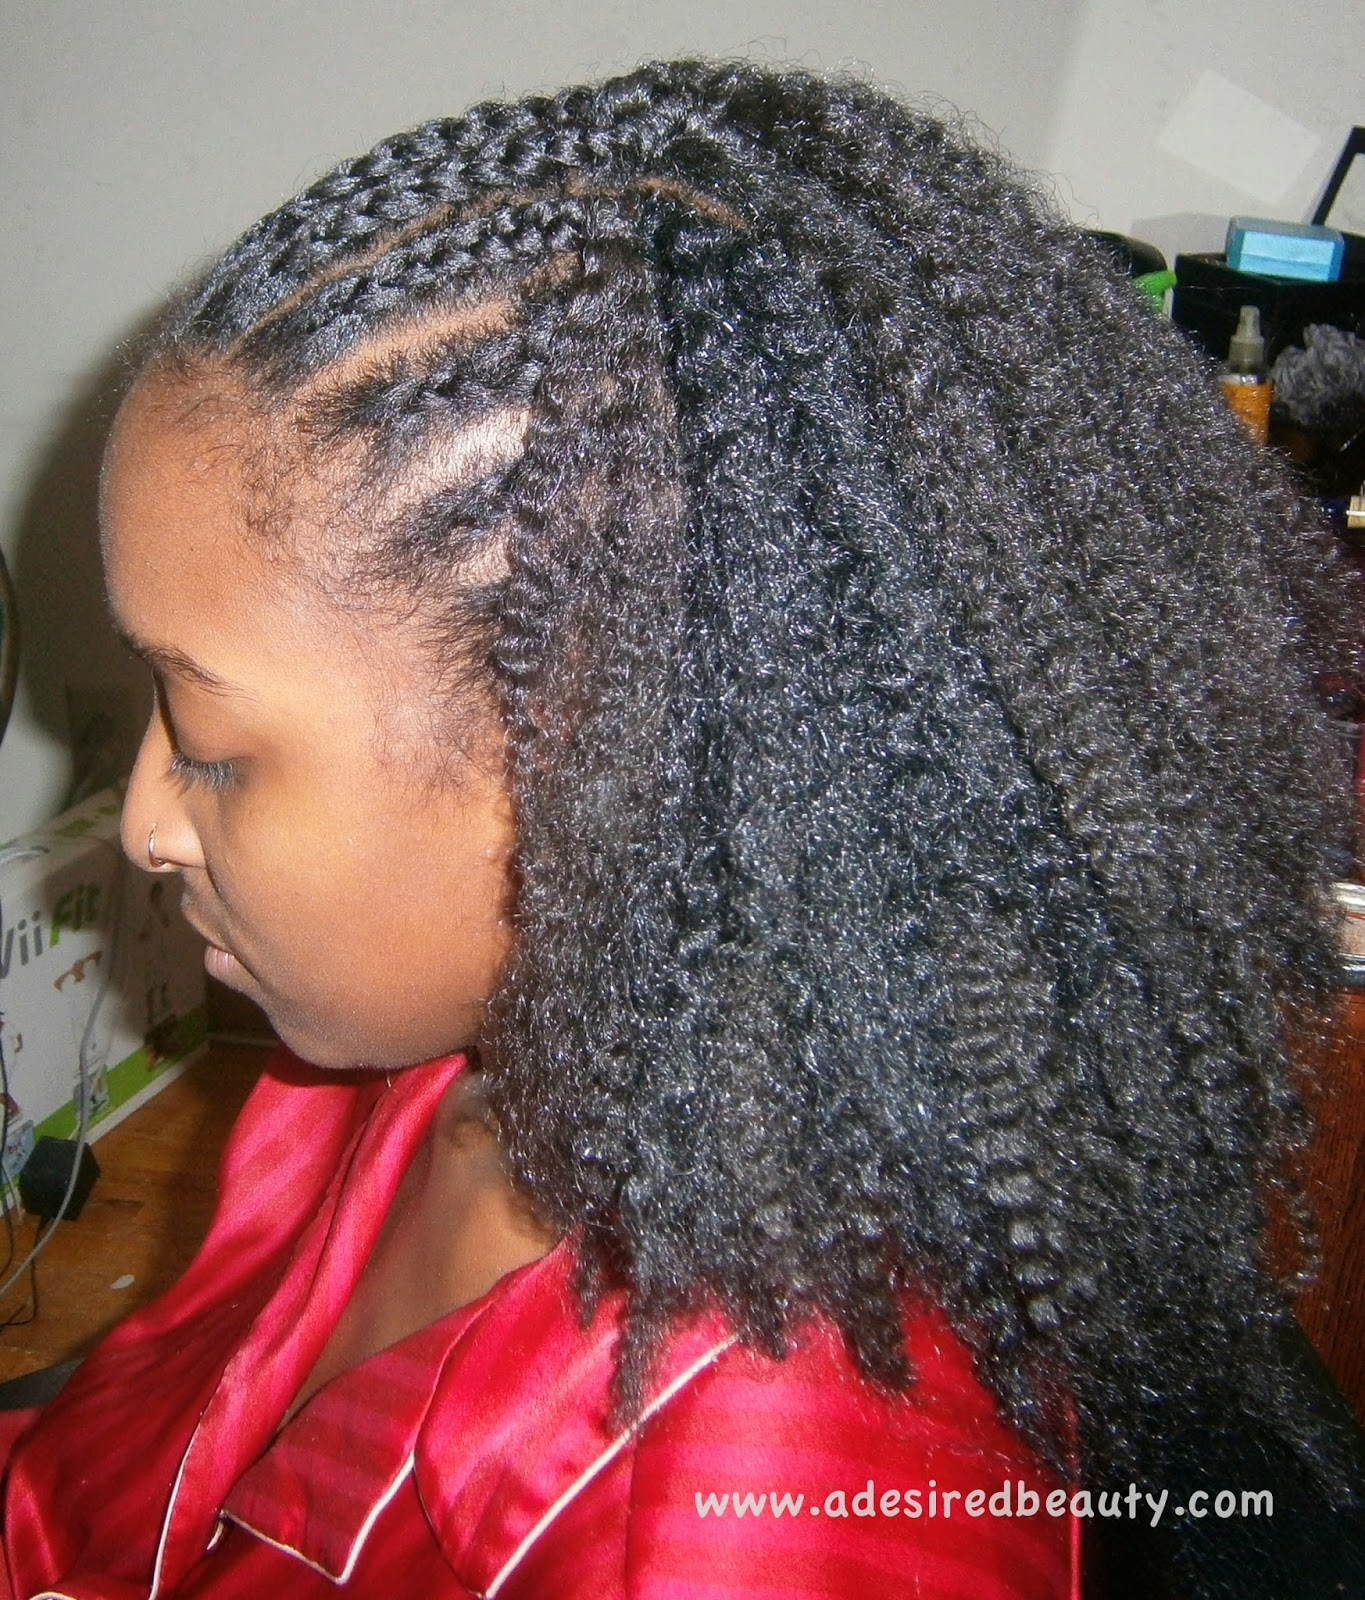 Crochet Braids Dallas : Installing My Sisters Crochet Braids {Inspiring My Own} A Desired ...